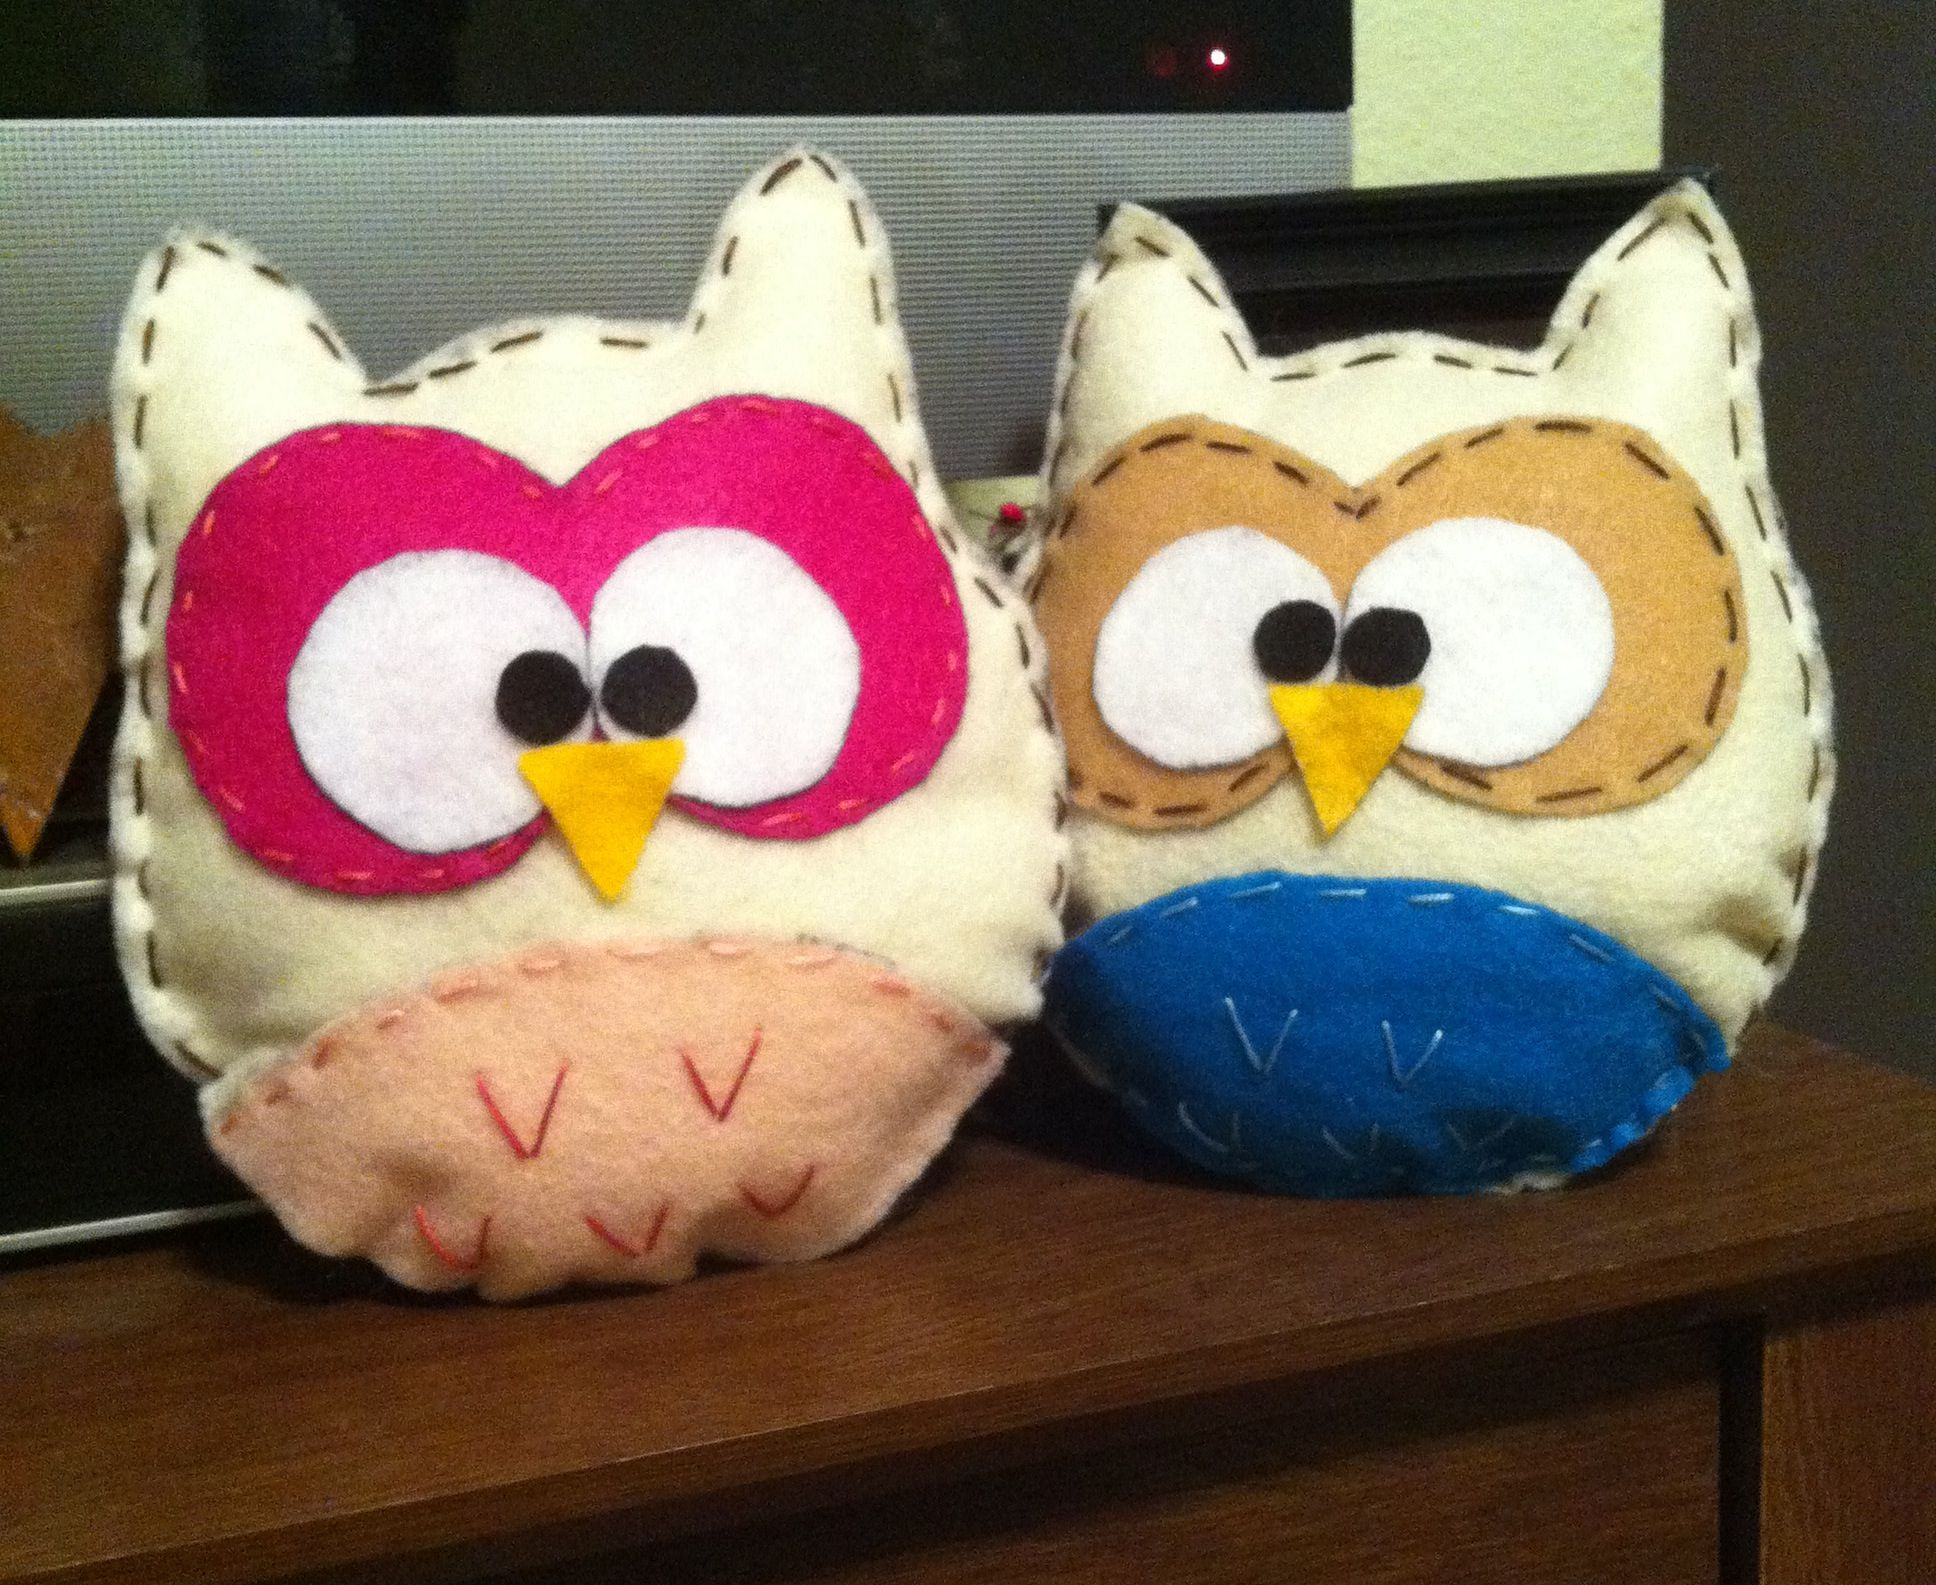 Stuff Owl Stuffed Owls Made From Felt Crafts For Kiddos